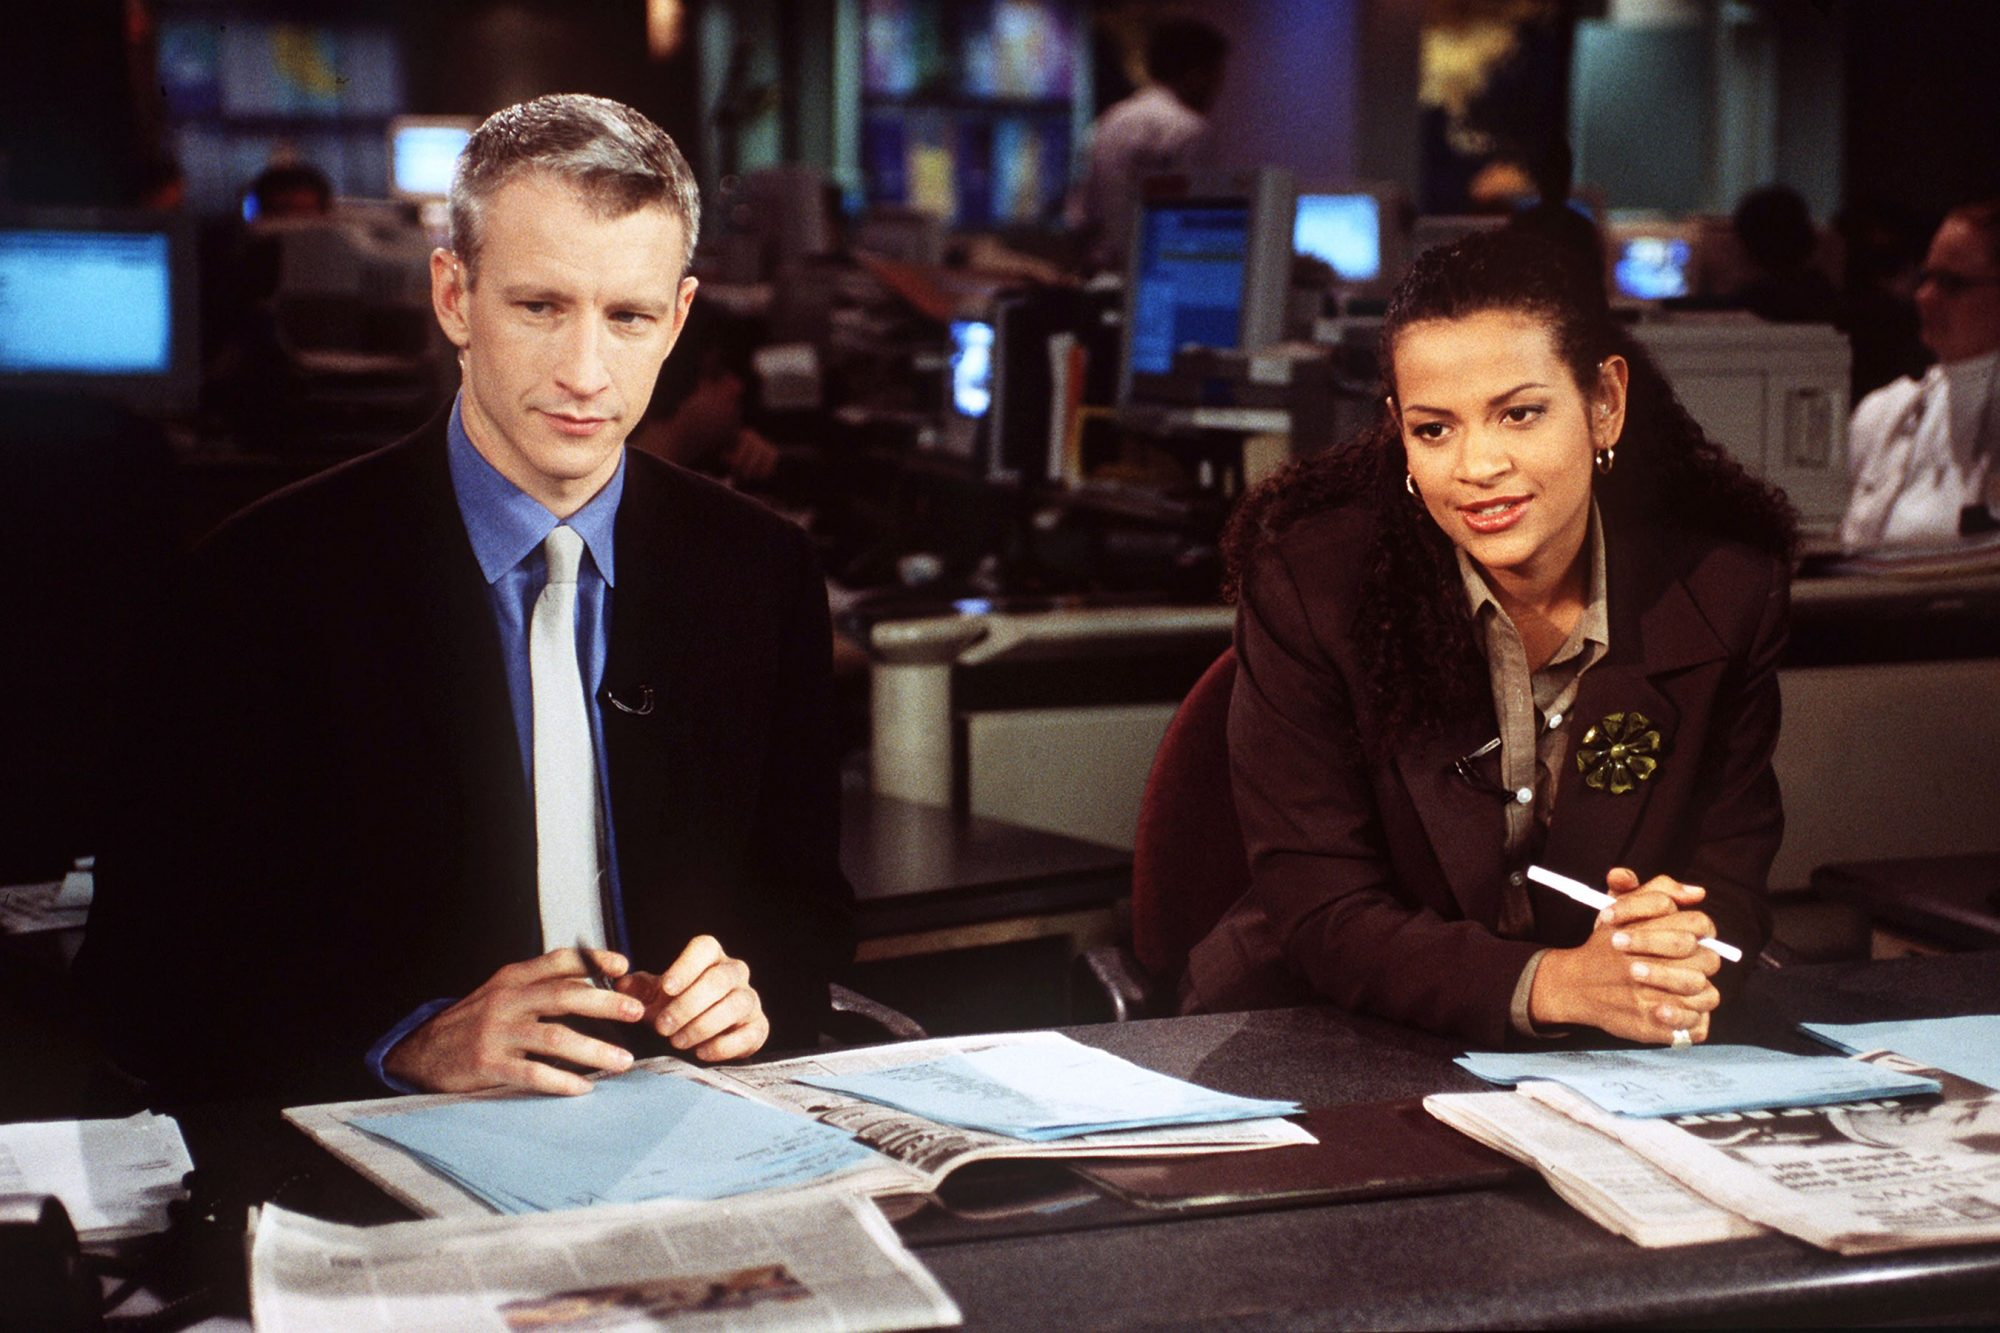 WORLD NEWS NOW, Anderson Cooper and Alison Stewart broadcast from the set,  airing overnight on ABC